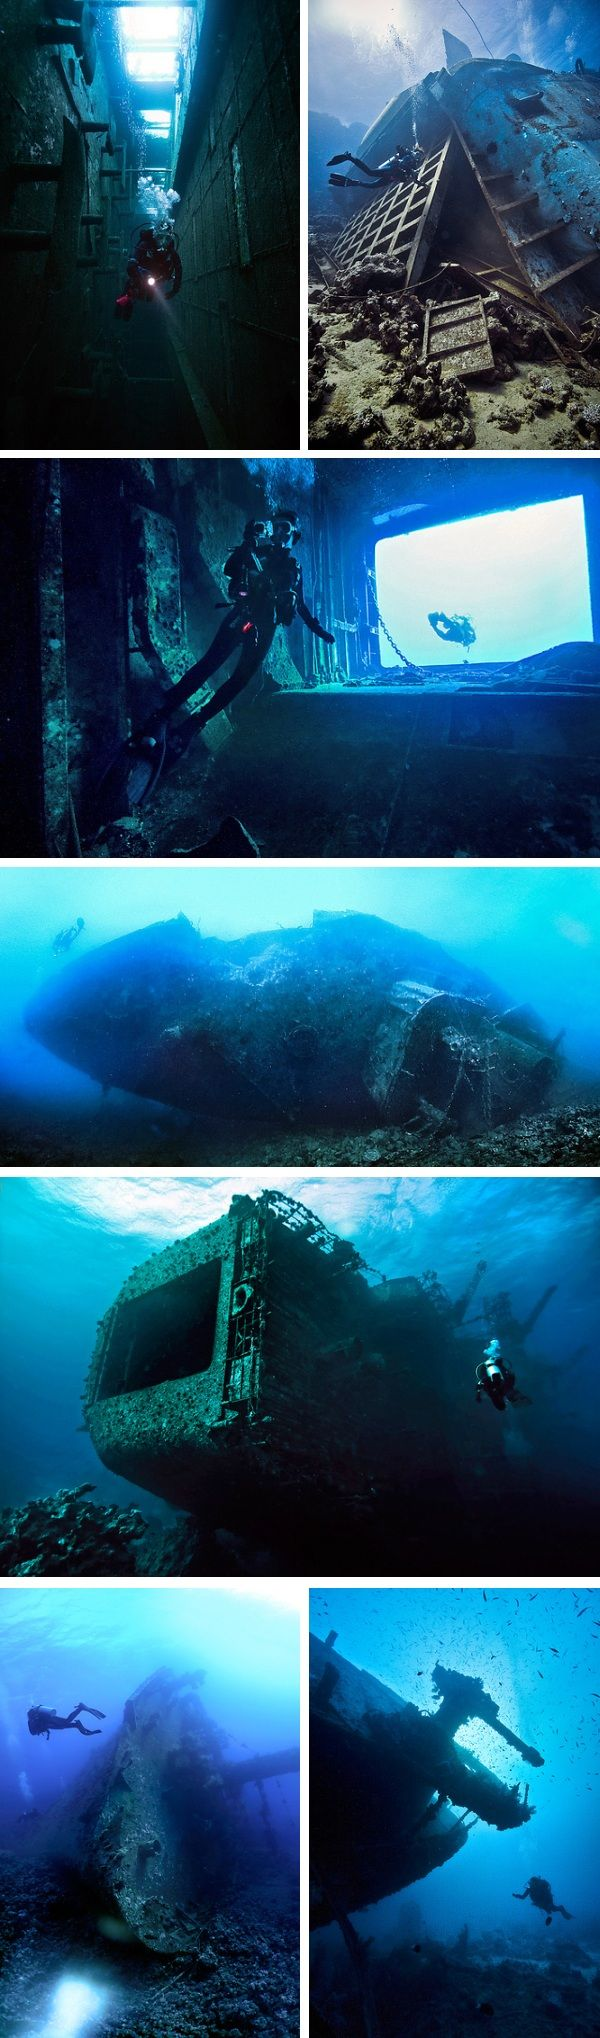 The Red Sea is a treacherous body of water known for its storms, fierce currents, chains of reefs and submerged islands.  As a result, the seabed is home to what is arguably one of the world's most impressive ship graveyards, with wrecks both merchant and military scattered across the bottom.